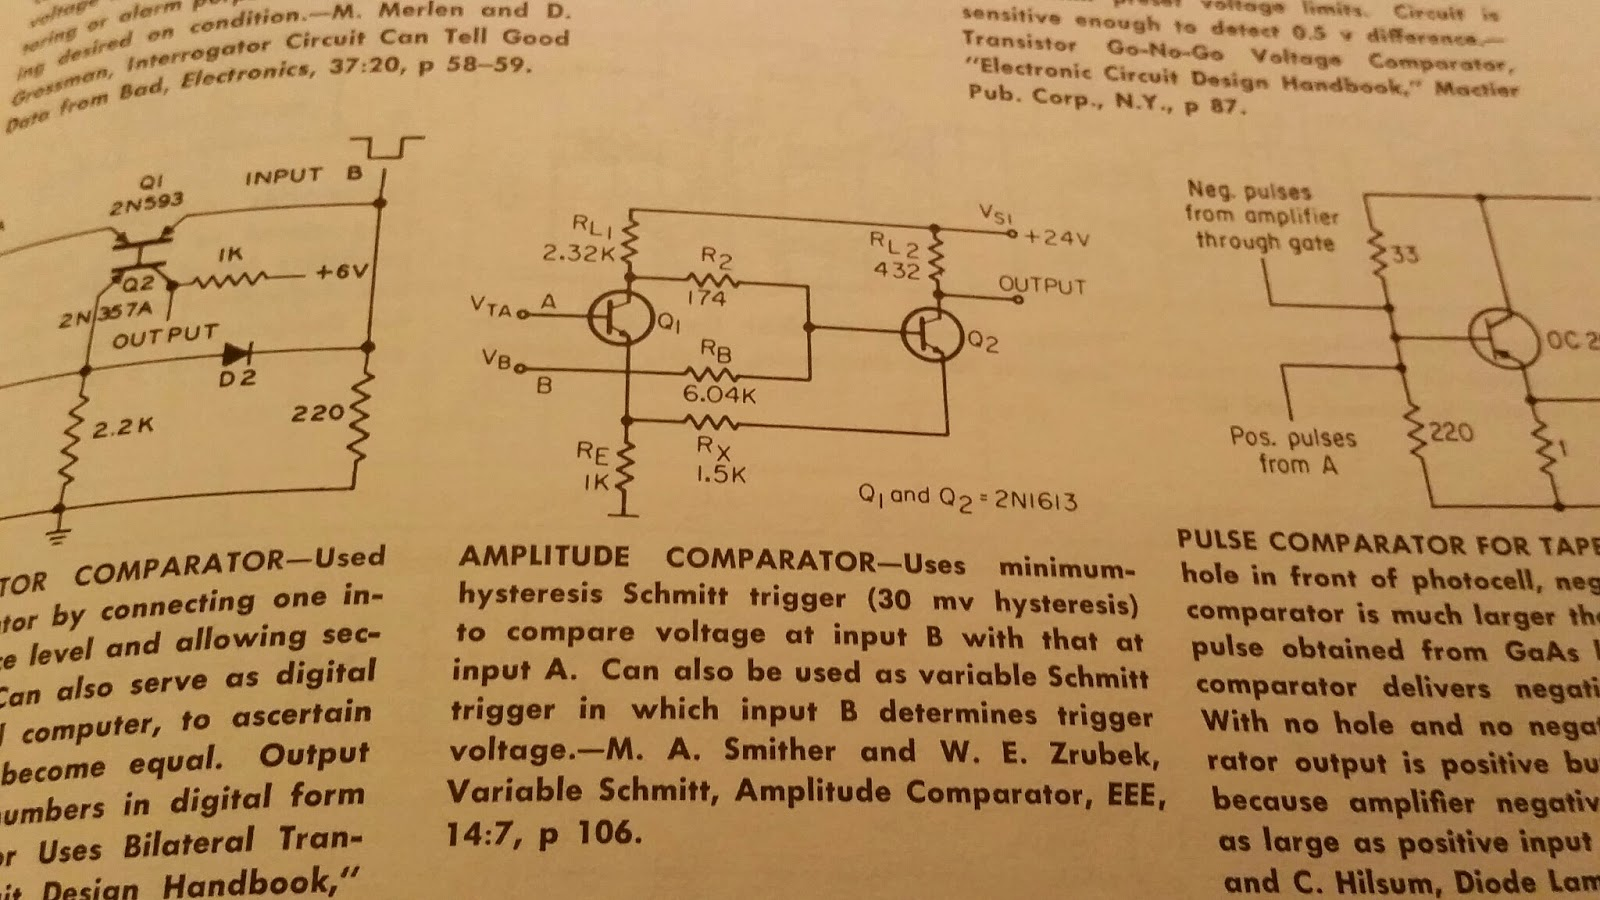 Scrs Neon Lamps Transistor Schmitt Triggers Sams Electrical Journal Using The Lm741 Construct Openloop Comparator Circuit Shown Be Books Calls This A Minimum Hysteresis Trigger Meaning Its Which Has Two Threshold Voltages One For Going Up